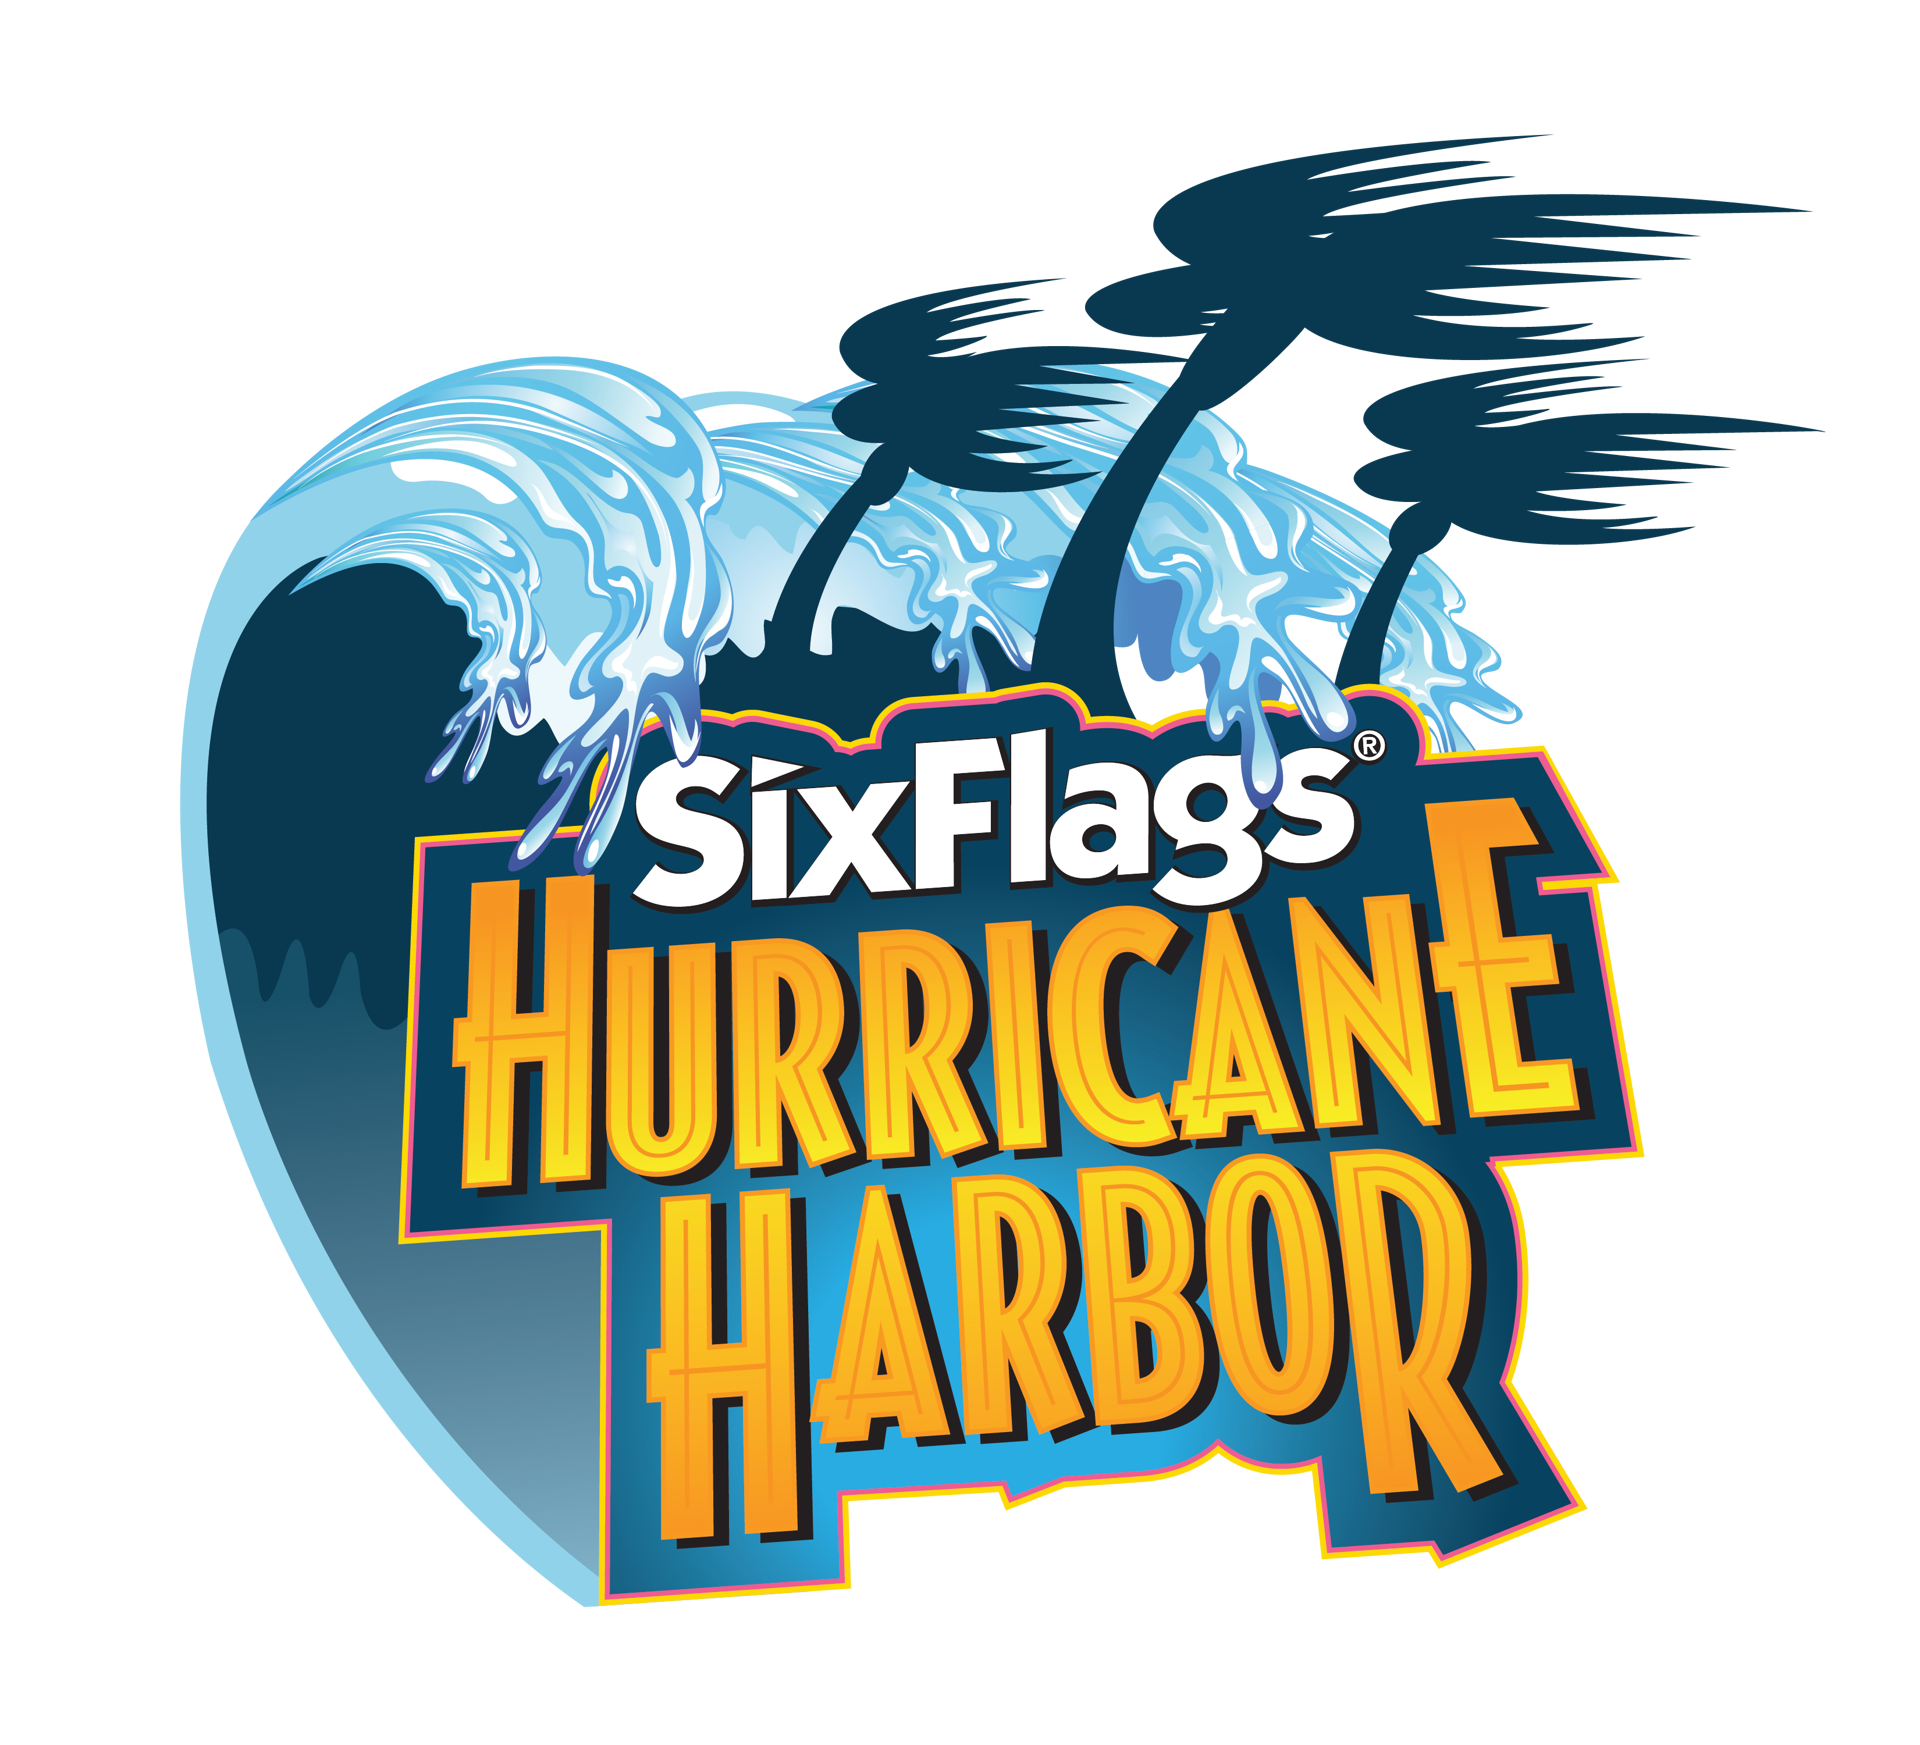 Neighborhood Credit Union offers high-interest Kasasa Checking accounts & Prize Savings accounts, and low rates on auto loans. We are the exclusive banking partner with Six Flags and Hurricane Harbor.